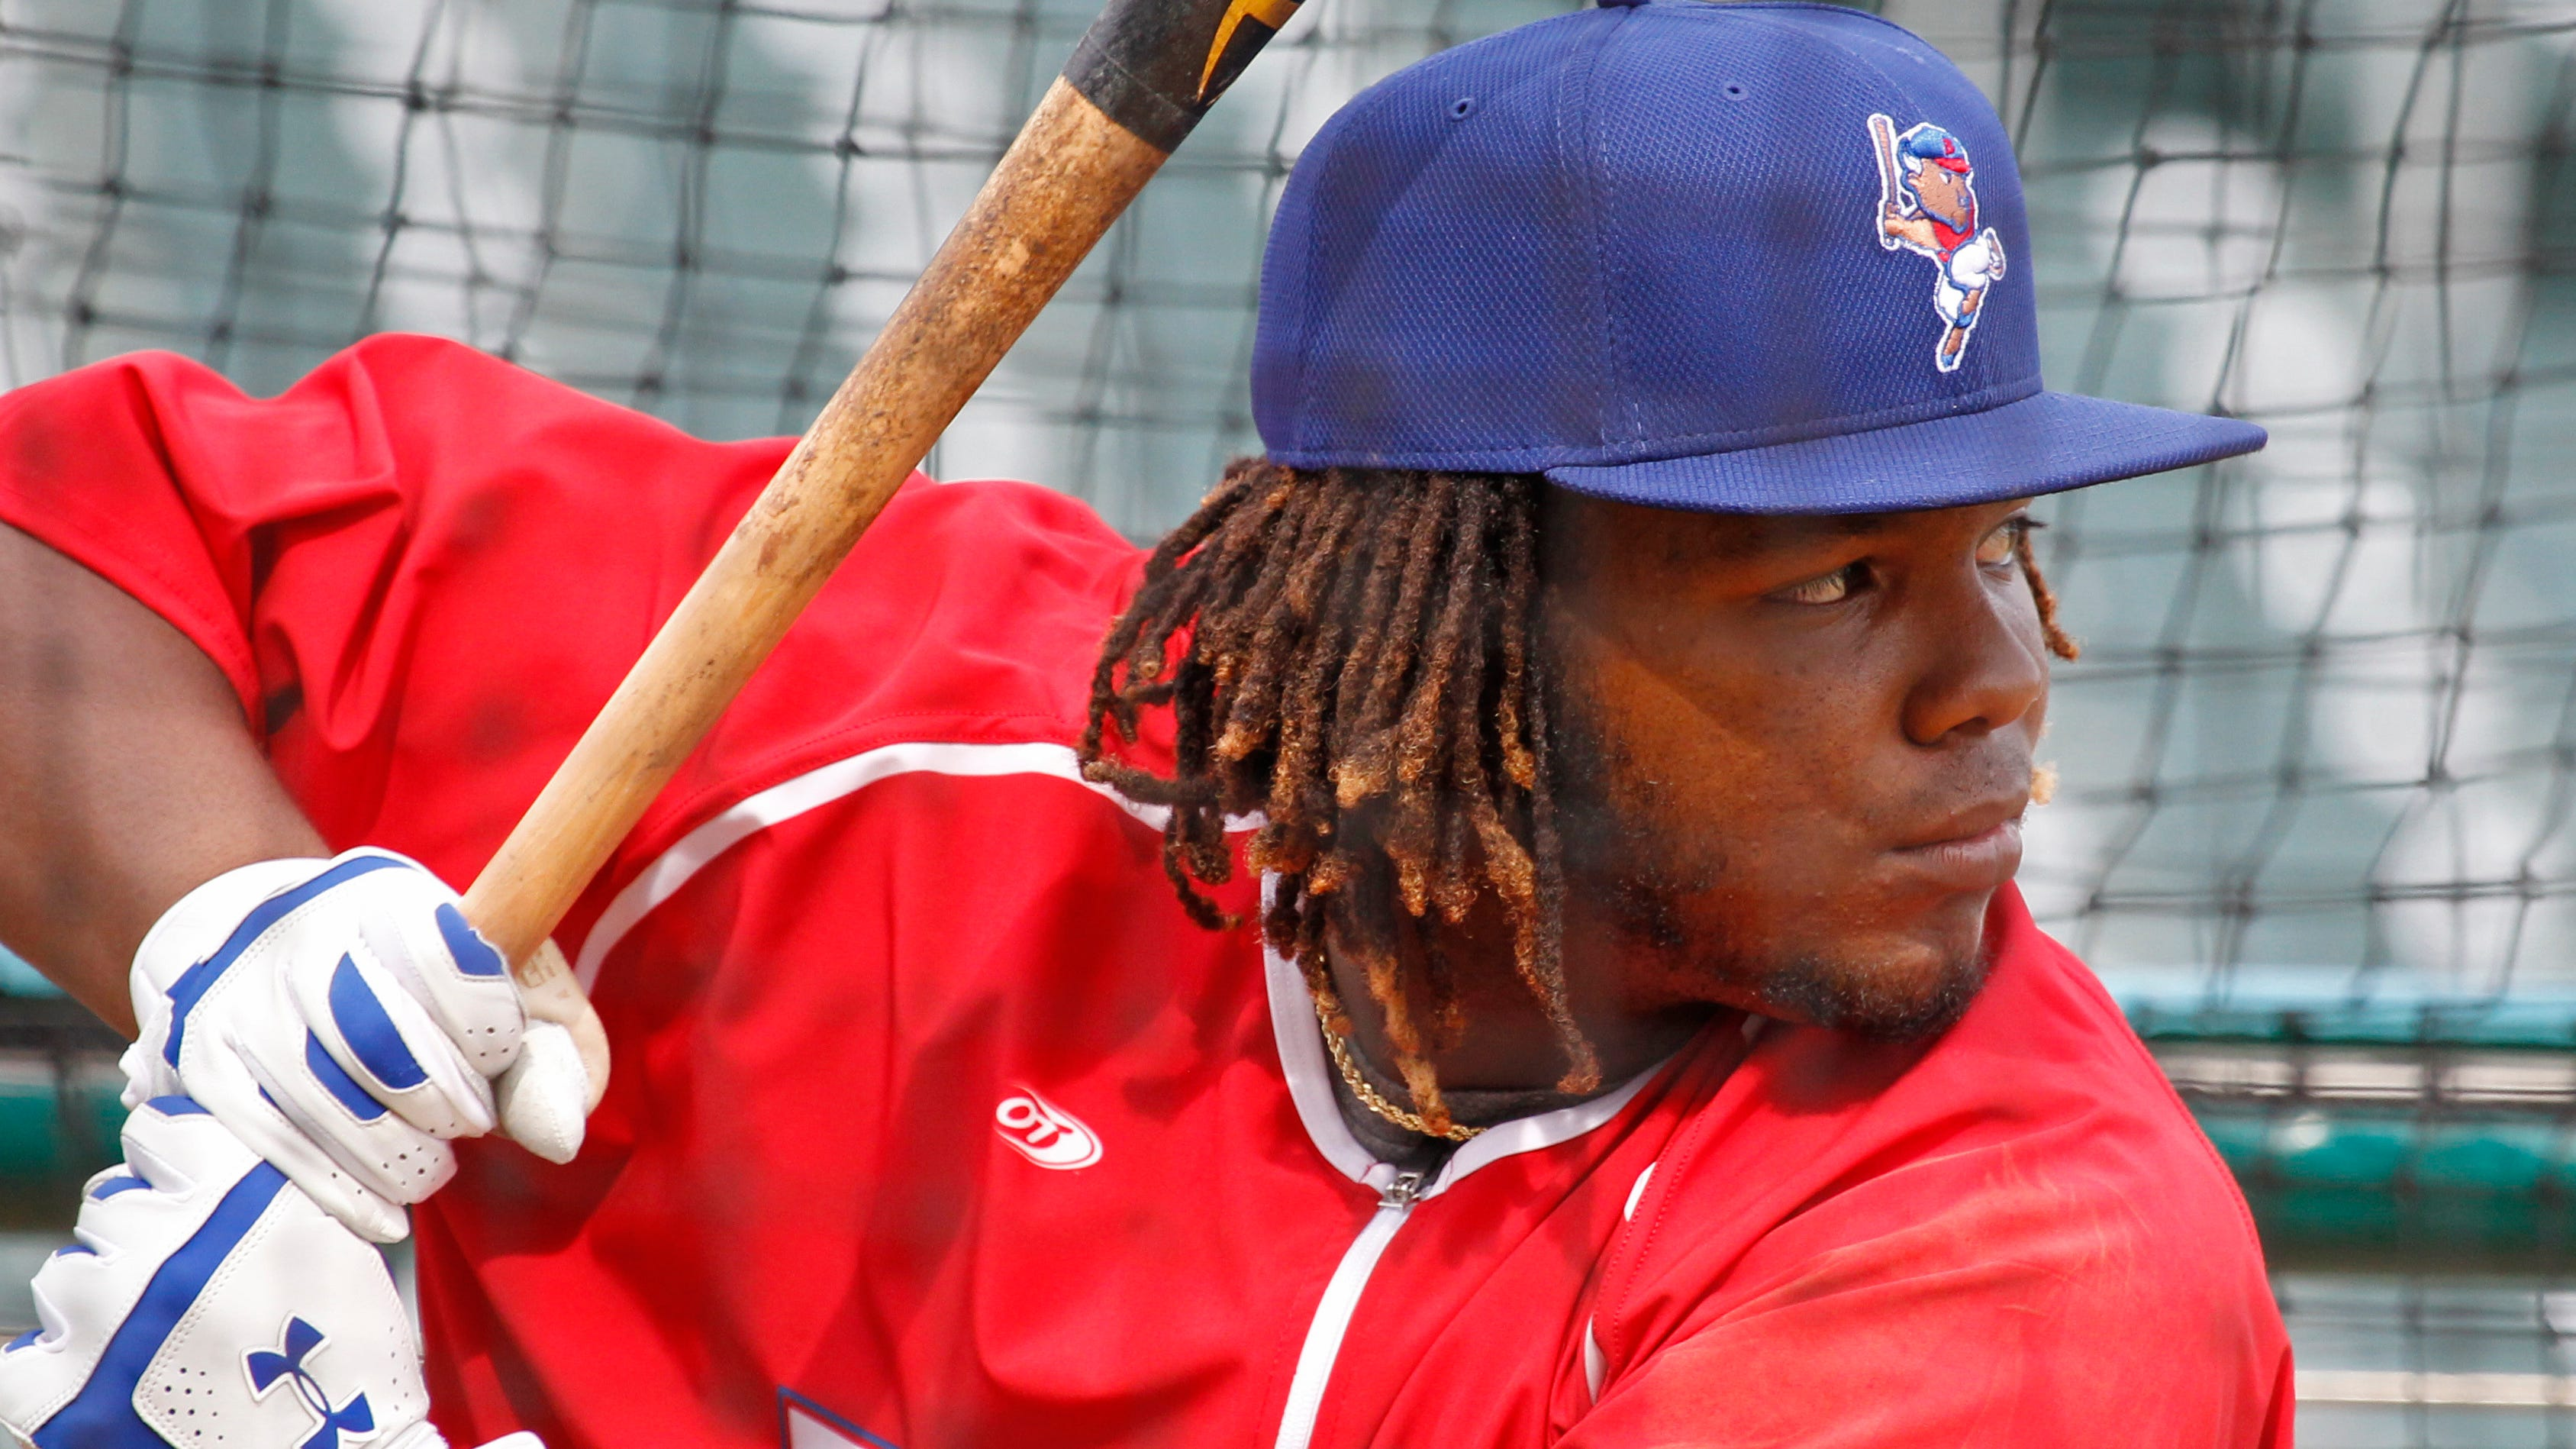 Rosters stacked with talent, including Vlad Guerrero Jr., as Arizona Fall League kicks off